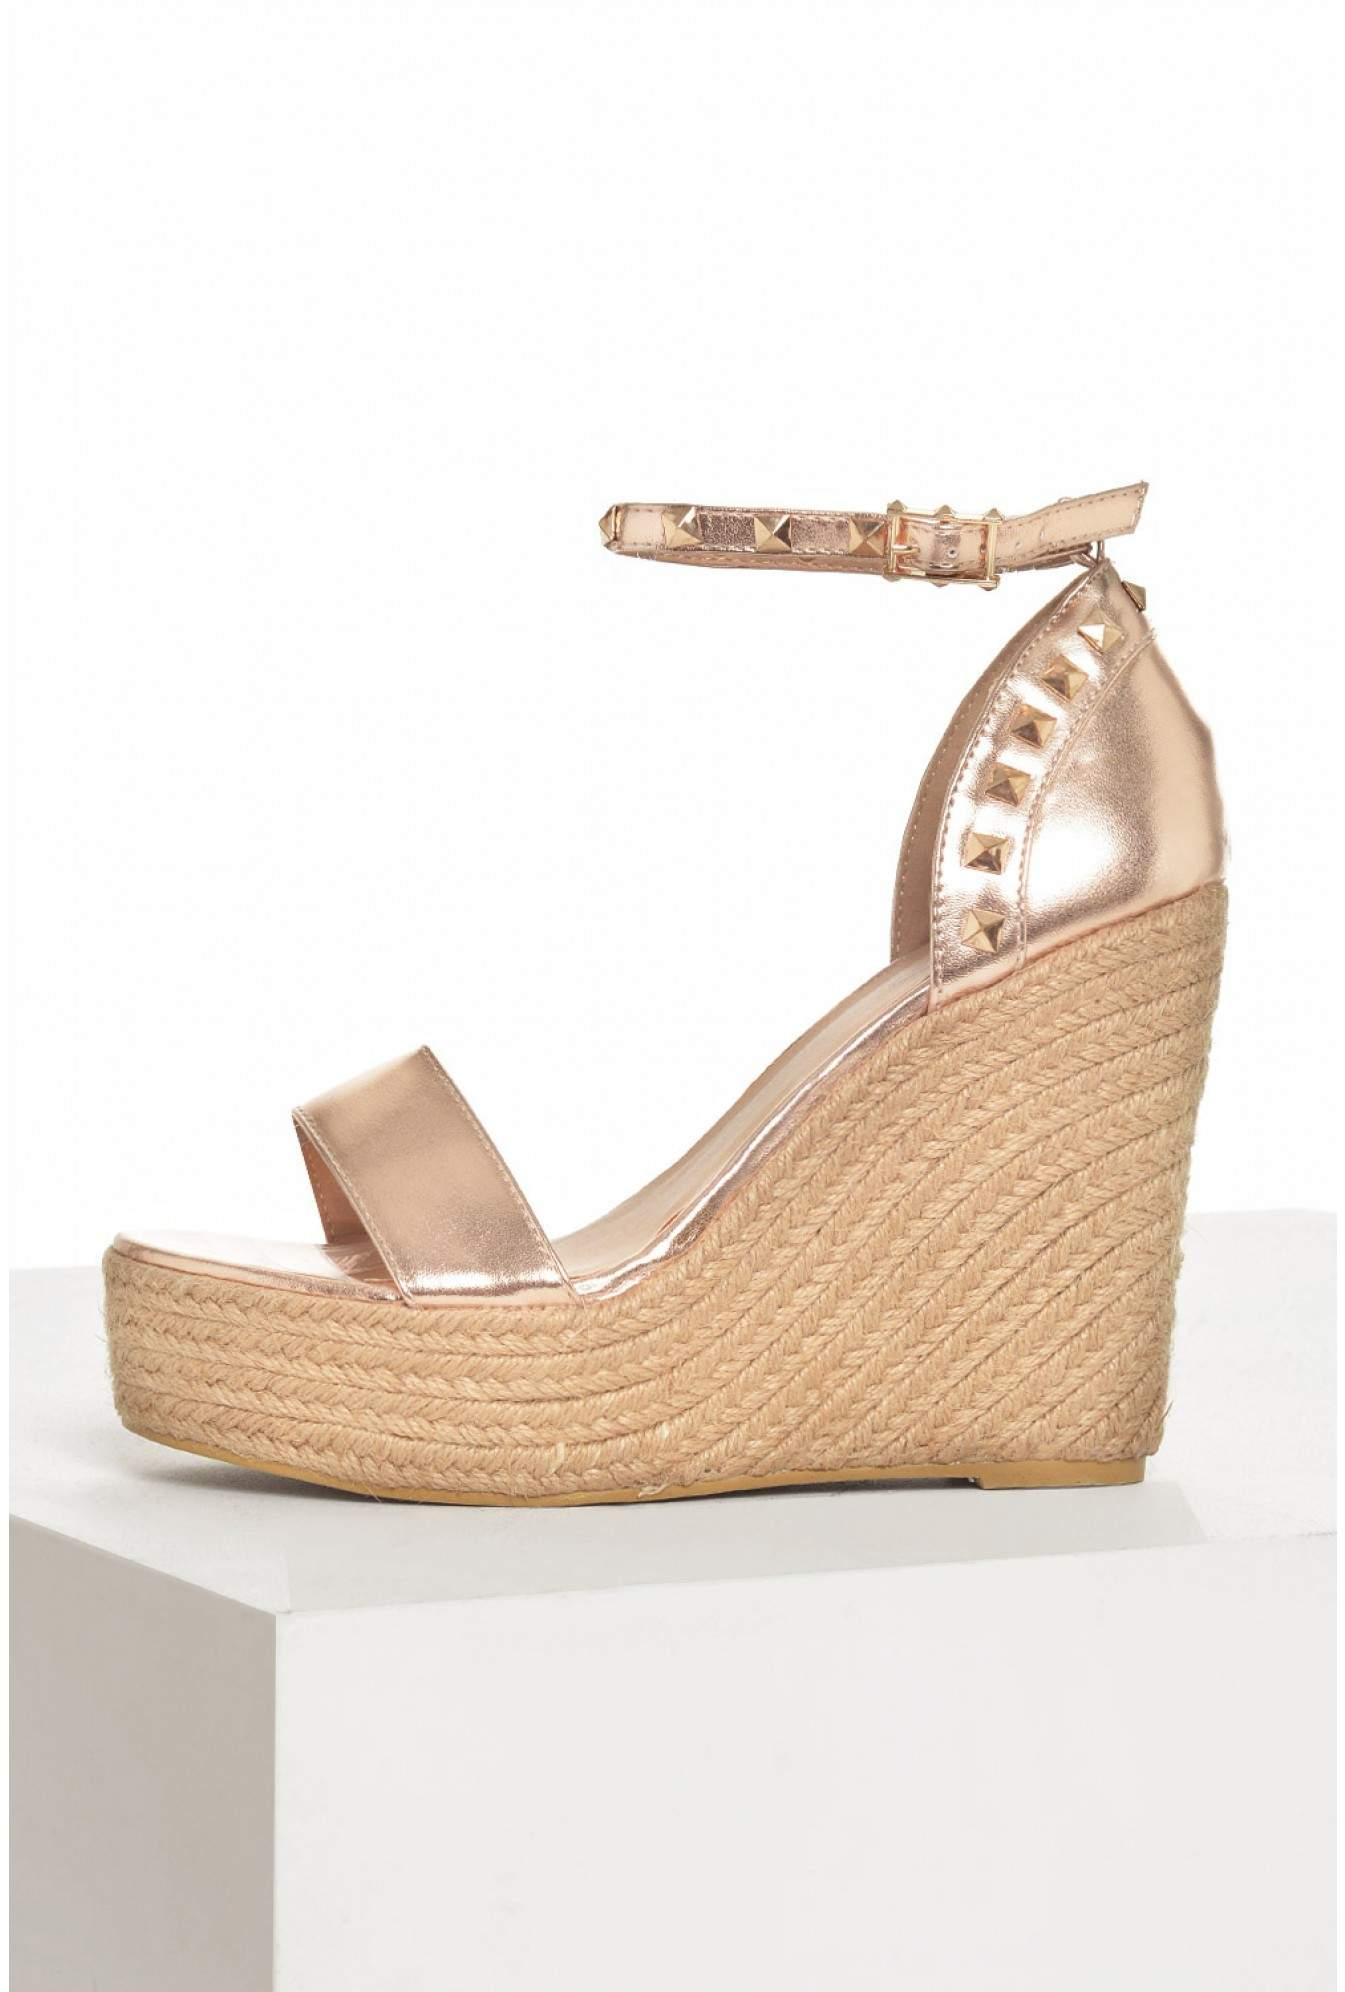 0256eadbe498 No Doubt Rachel Studded Espadrille Wedges in Rose Gold